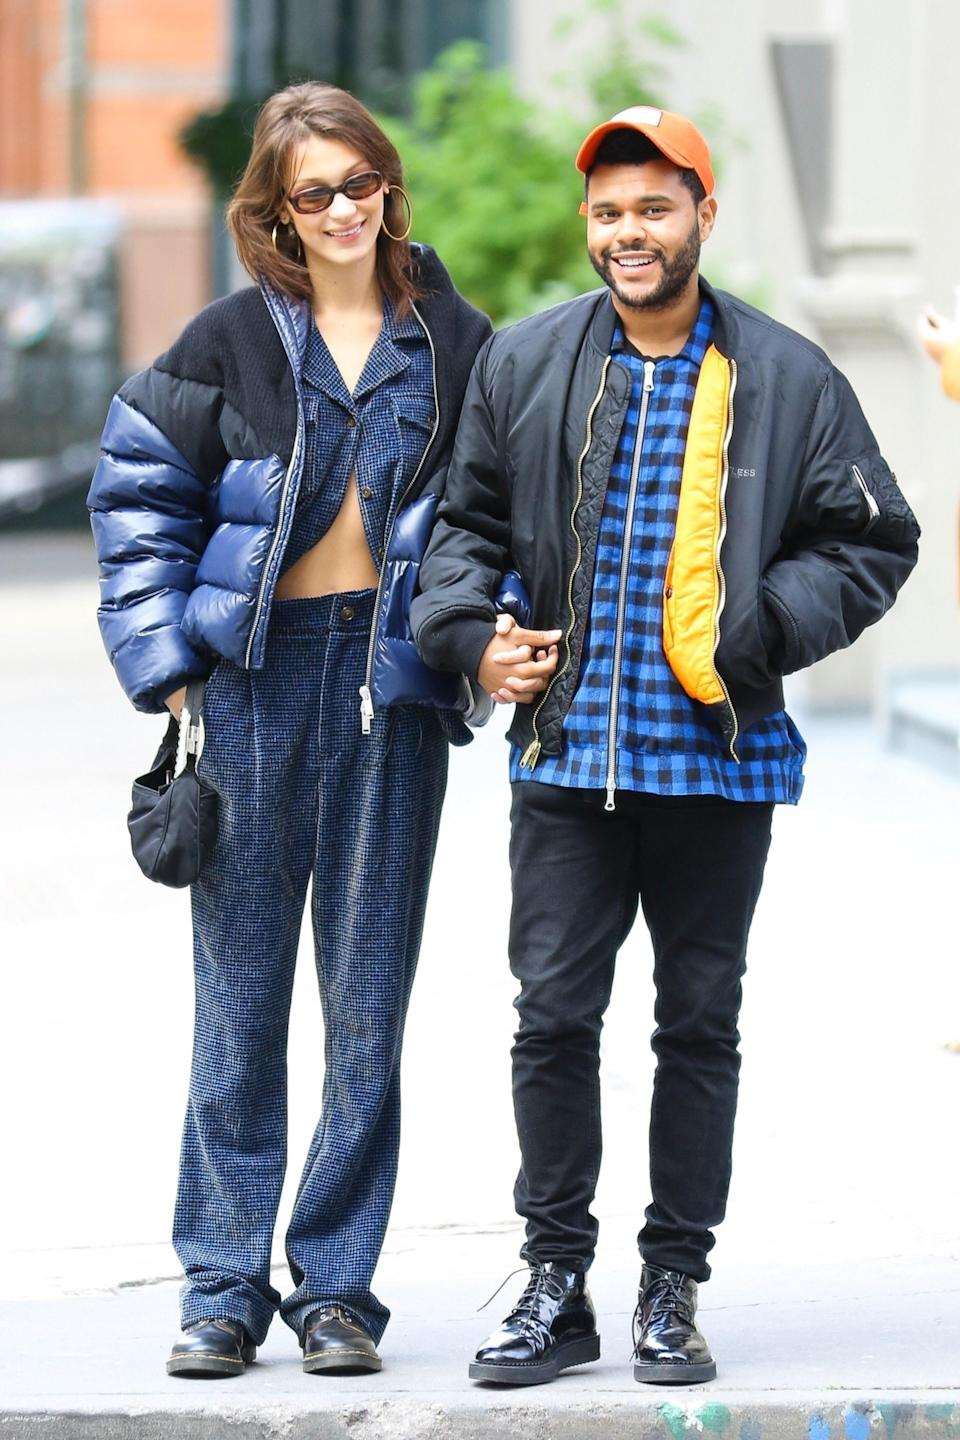 "New York, NY  - On-again couple Bella Hadid and The Weeknd are all smiles as they hold hands while on a stroll in New York. The pair, who are now living together, seem to be stronger than ever as they reportedly consider themselves ""unofficially engaged.""Pictured: Bella Hadid, The WeekndBACKGRID USA 29 OCTOBER 2018 USA: +1 310 798 9111 / usasales@backgrid.comUK: +44 208 344 2007 / uksales@backgrid.comUK Clients - Pictures Containing ChildrenPlease Pixelate Face Prior To Publication"